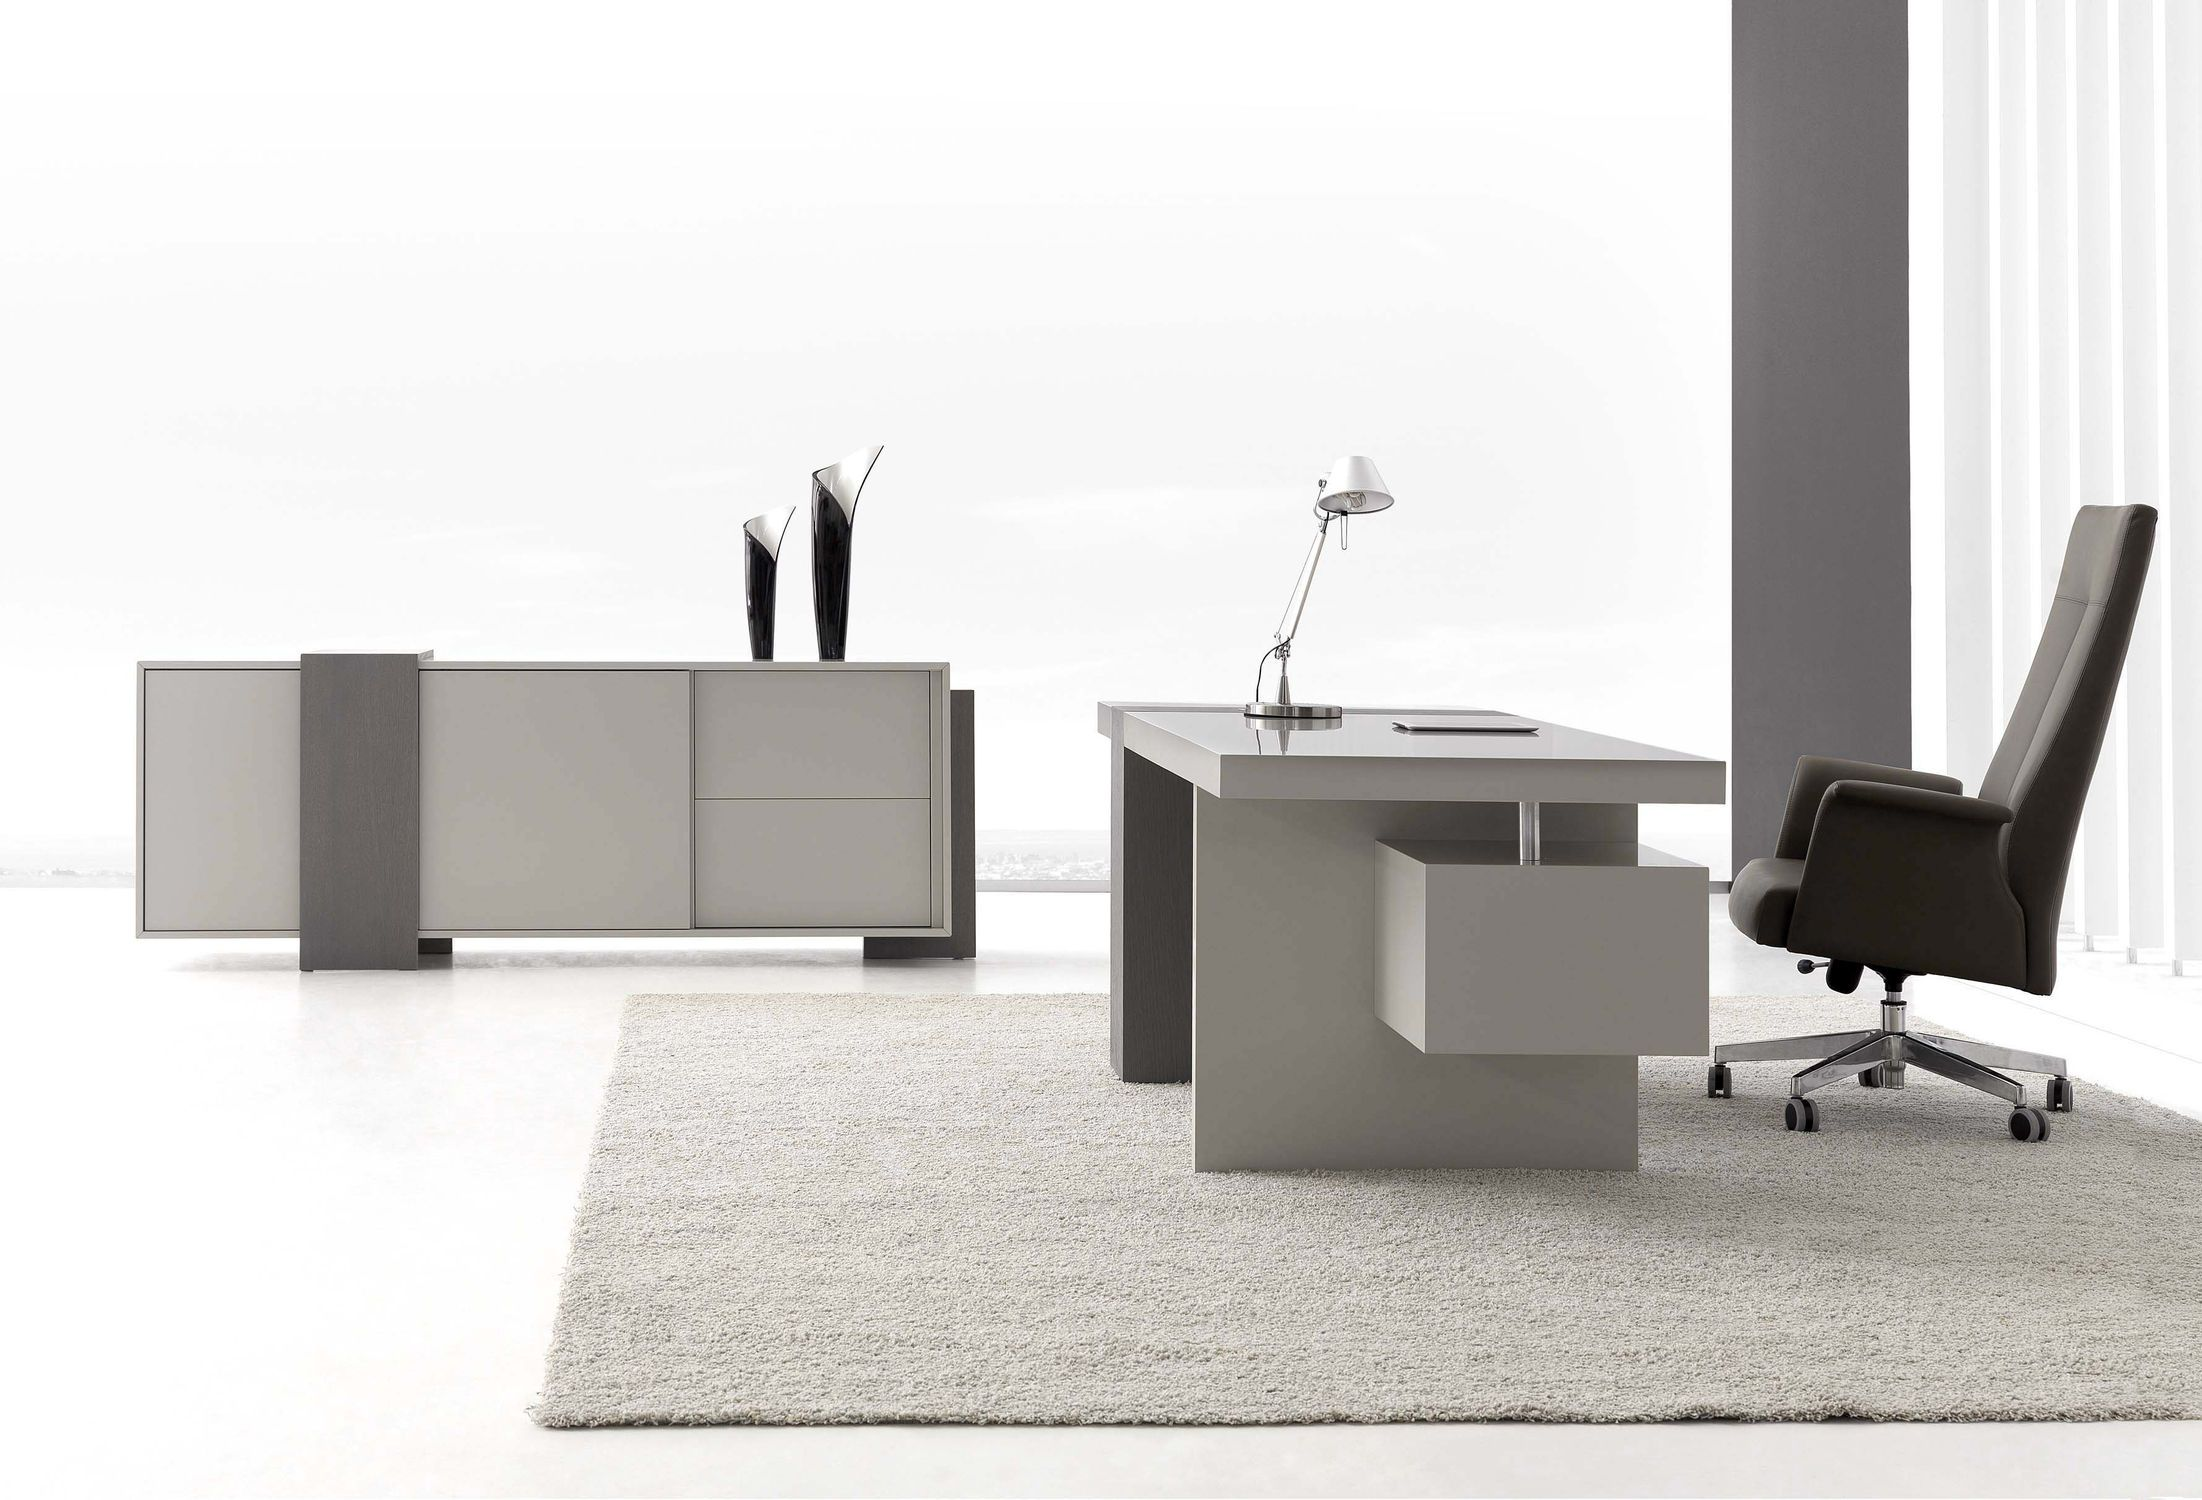 designer office desks. Modern Executive Office Interior Design - Google Search Designer Desks